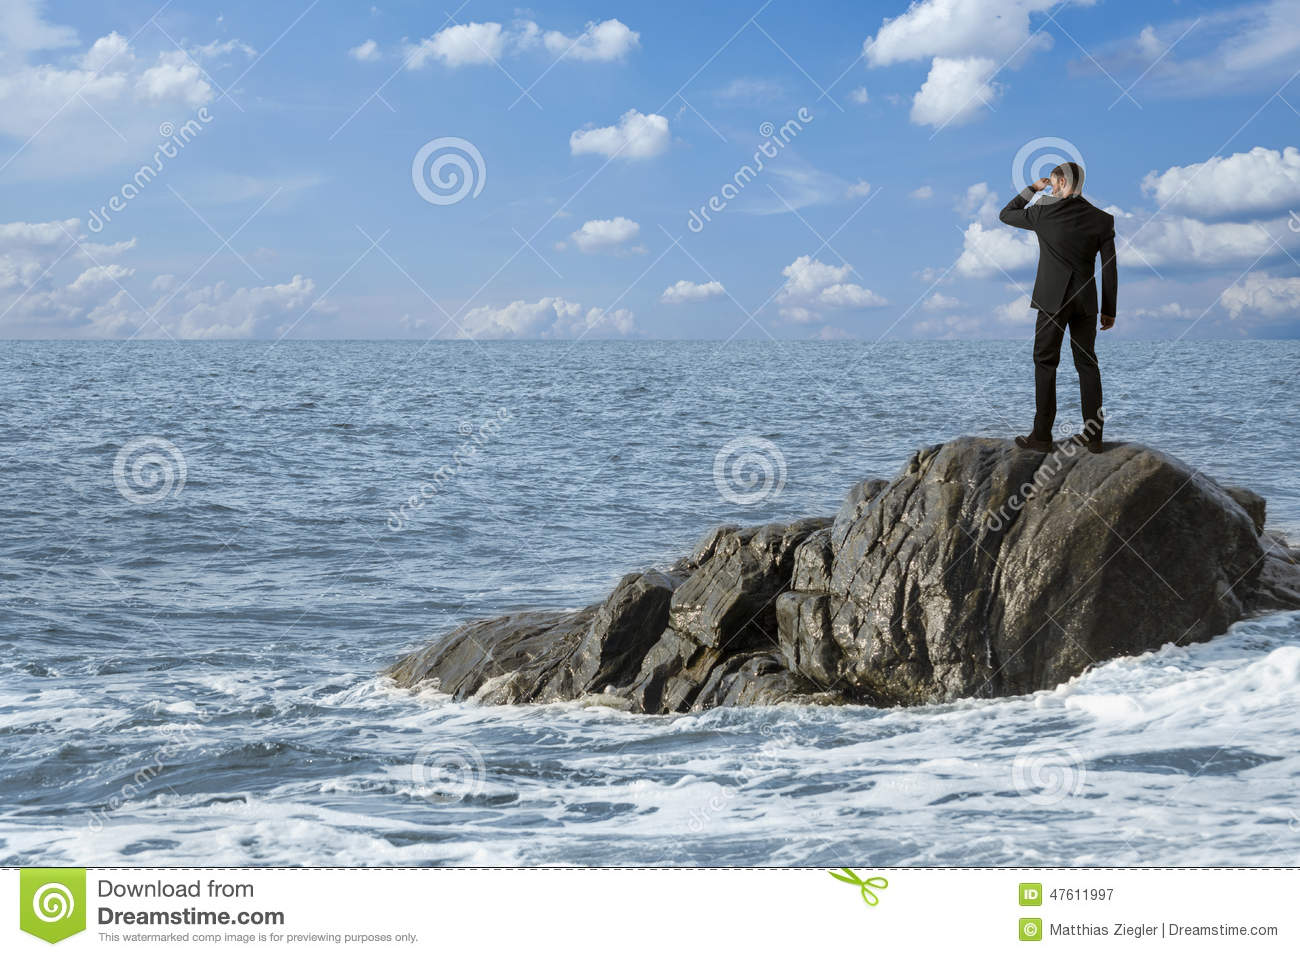 Download Observing Man On Rocks In The Sea Stock Image - Image of view, positive: 47611997